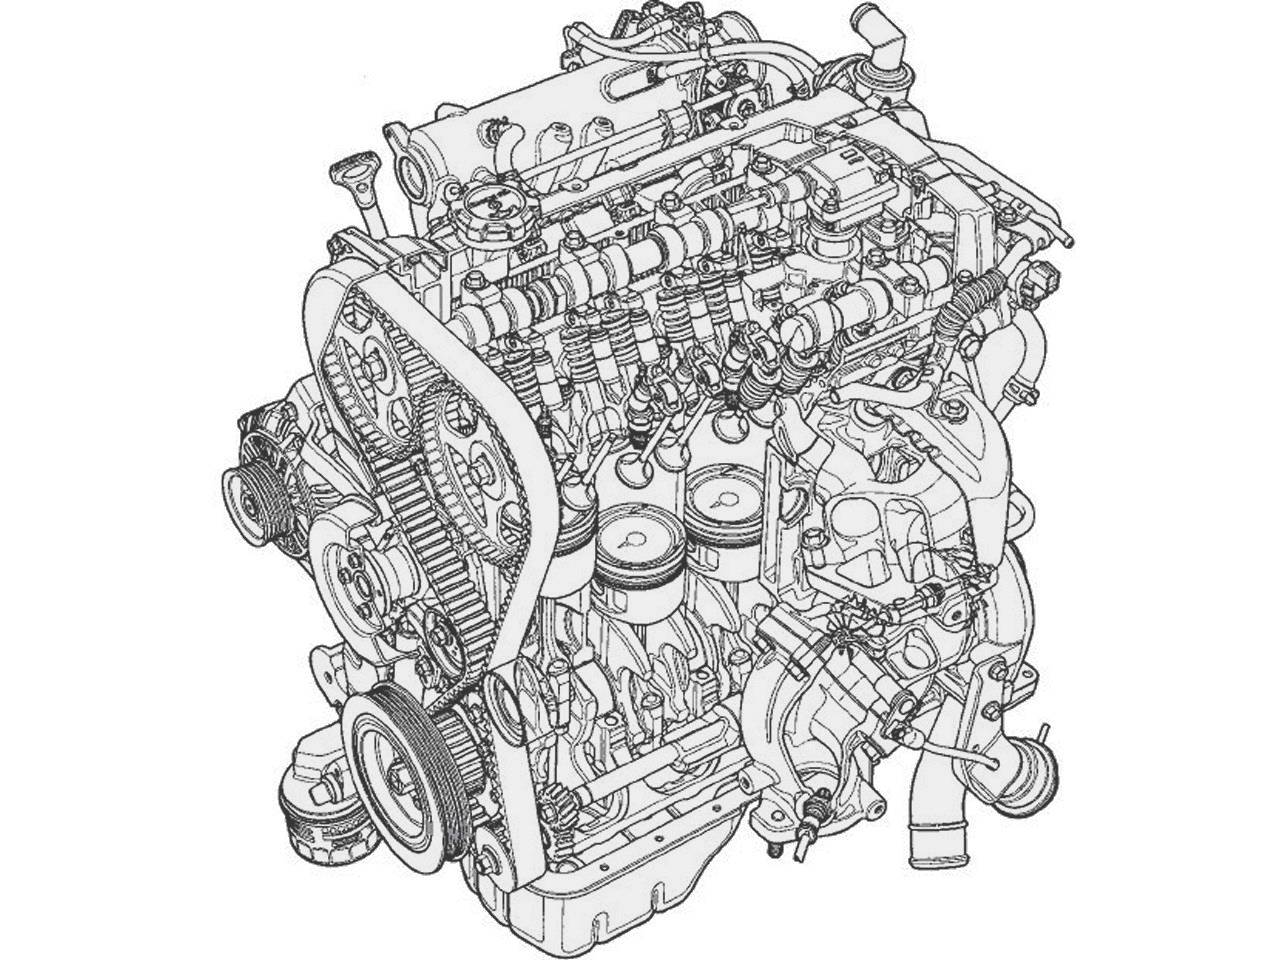 Diagram For 2009 Mitsubishi Lancer Engine Electrical 2006 Caravan 2 4 Evolution Wrc04 Car Cutaway Modern Racer Chevy Aveo